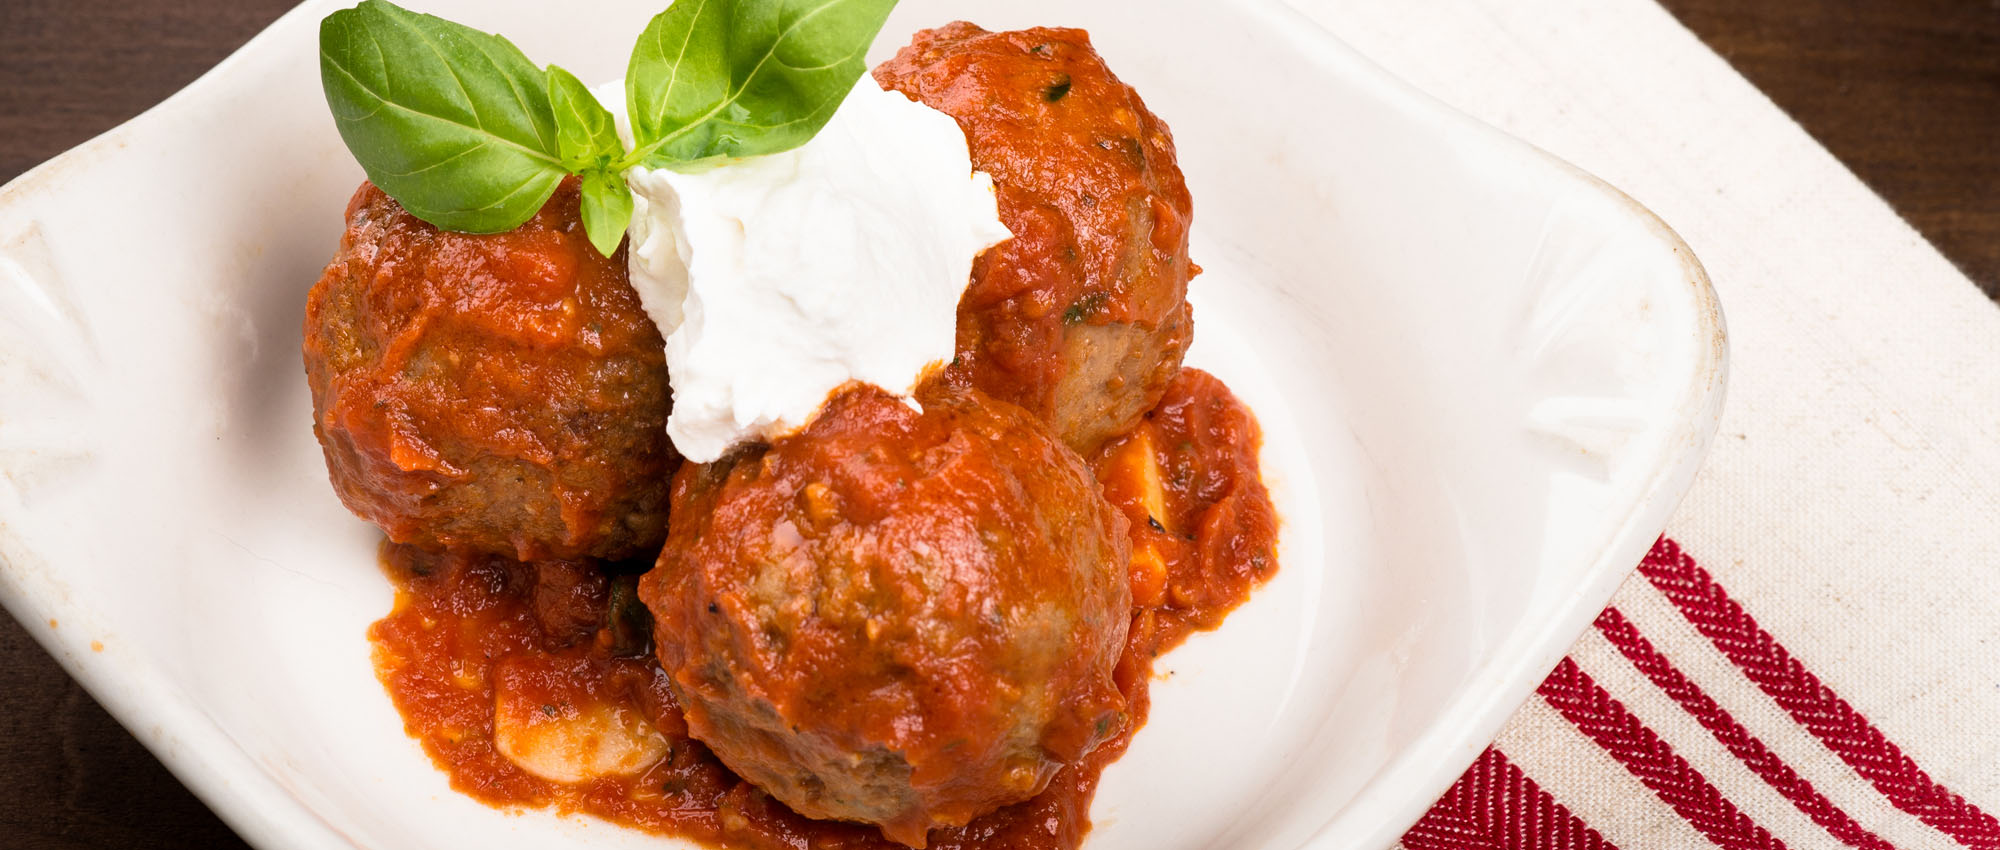 Nonna's Famous Meatballs, our signature dish